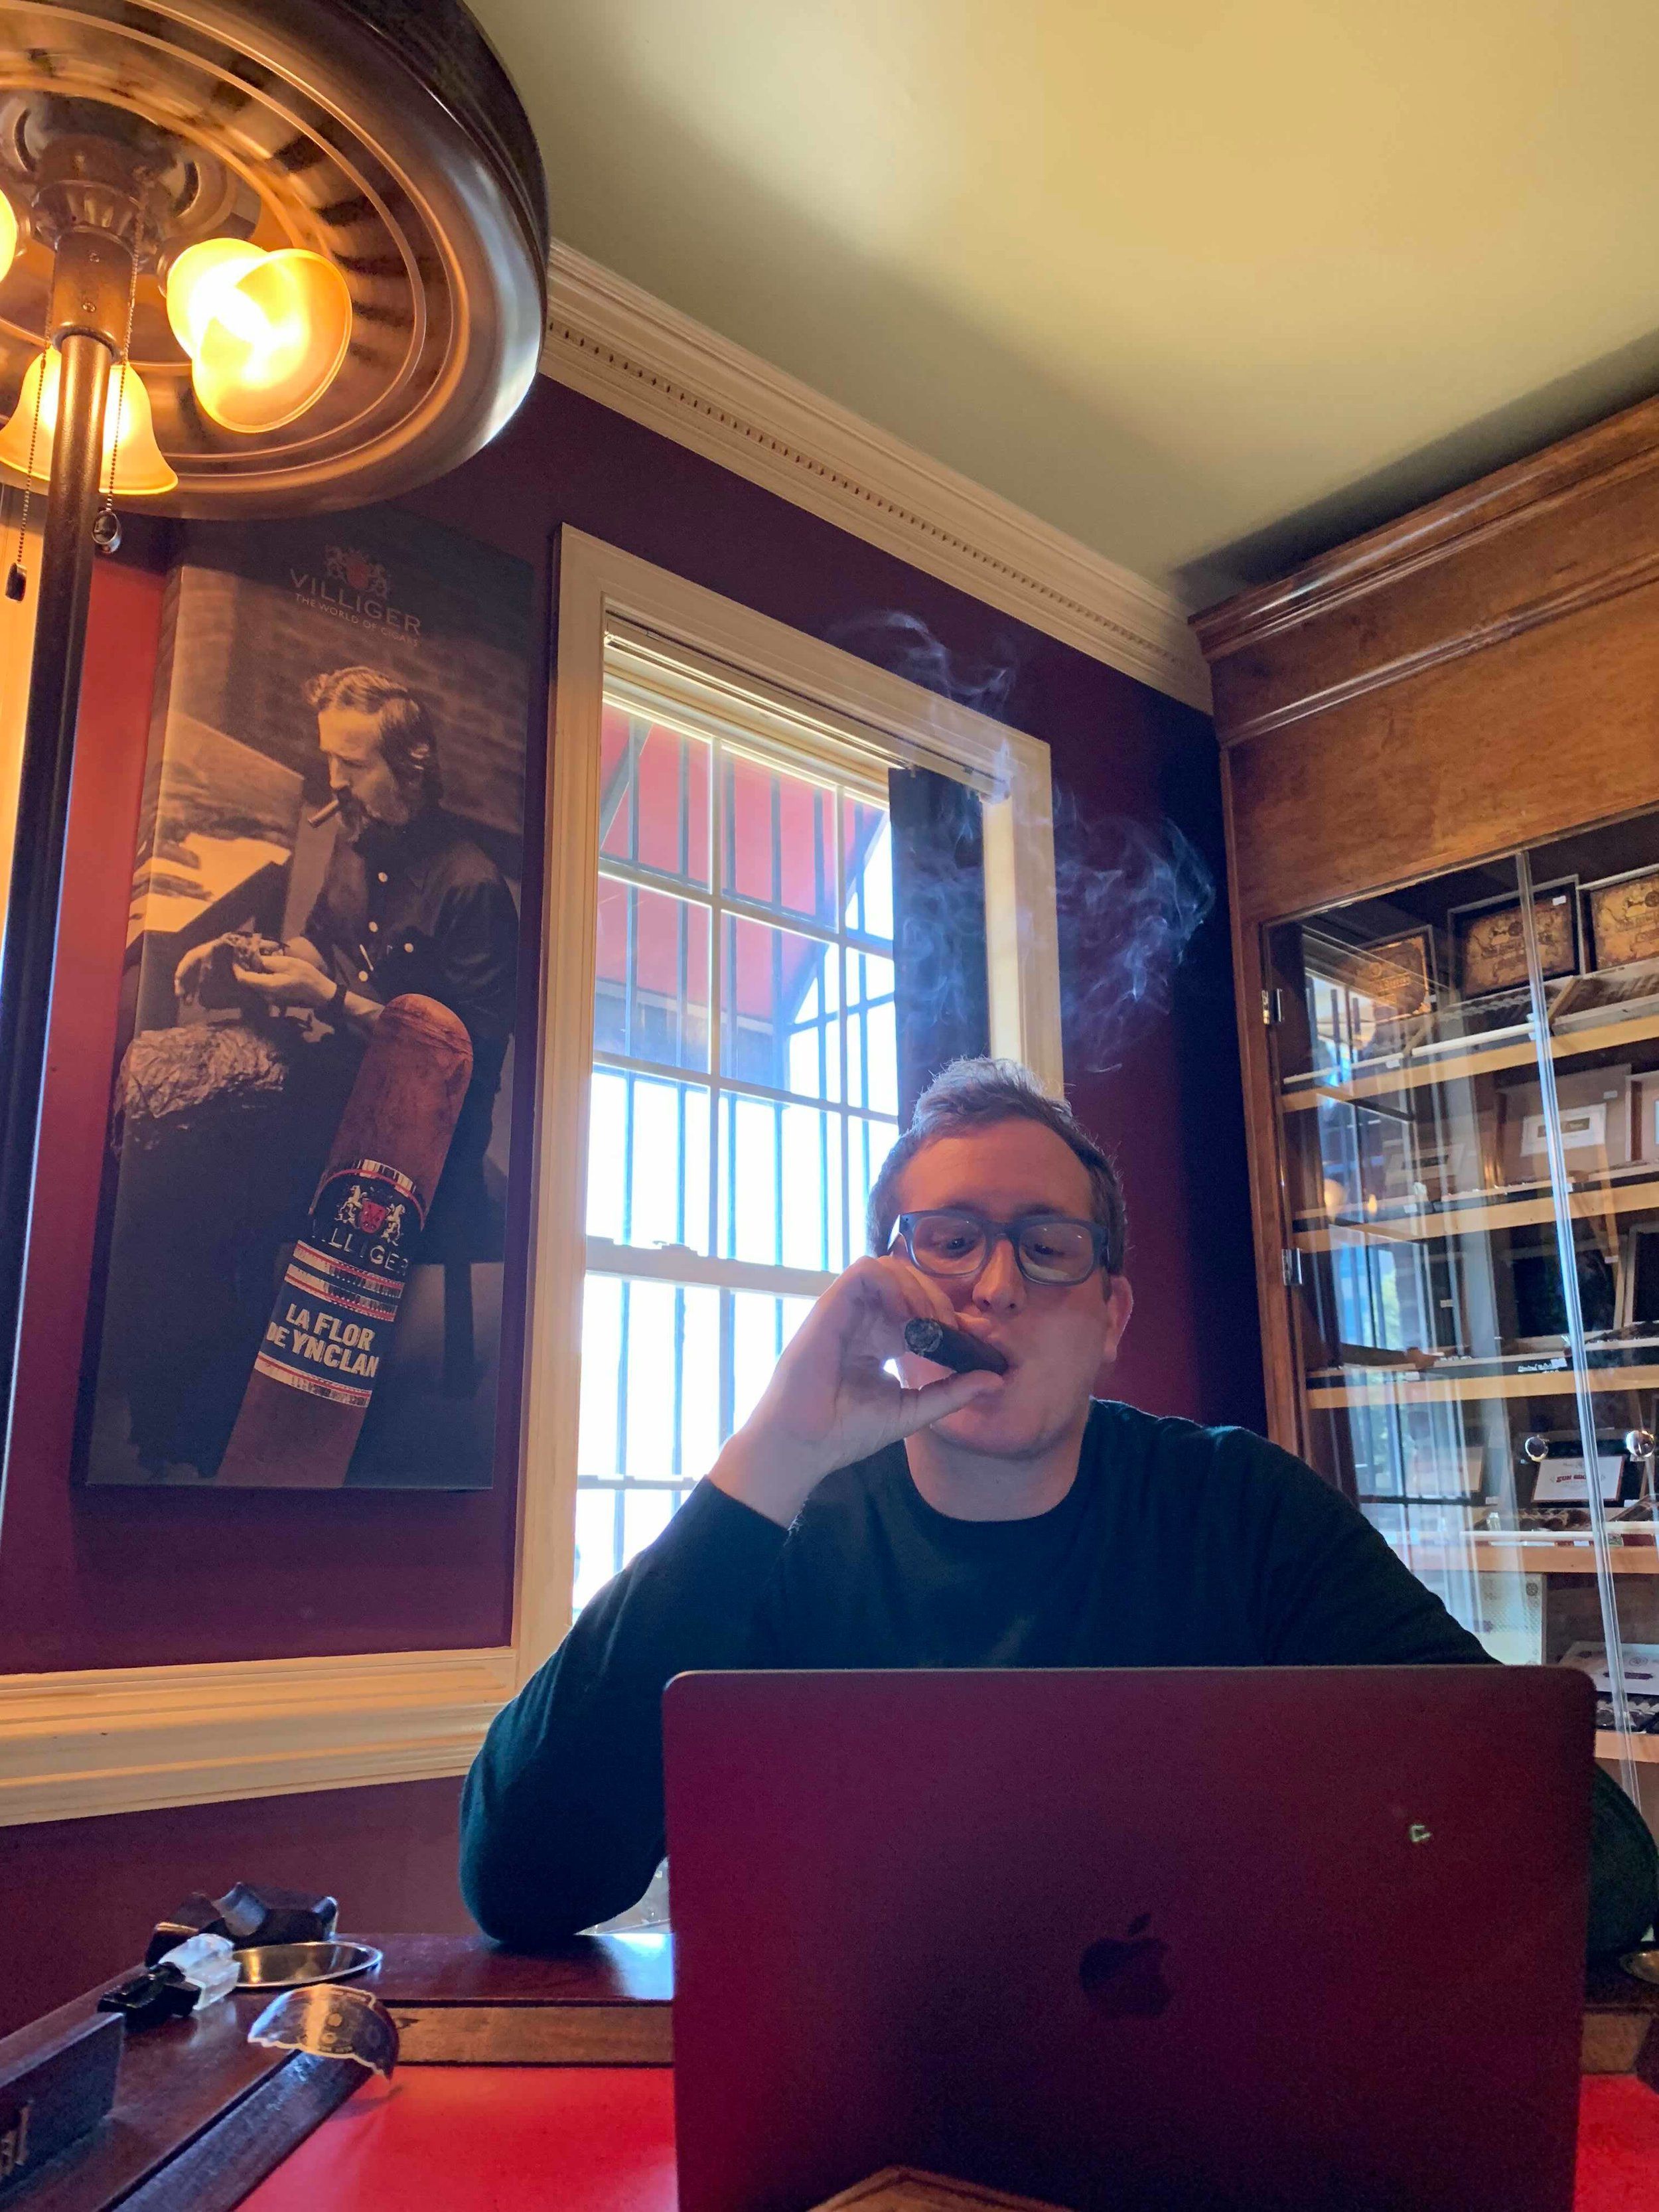 Still working, even in the cigar lounge!